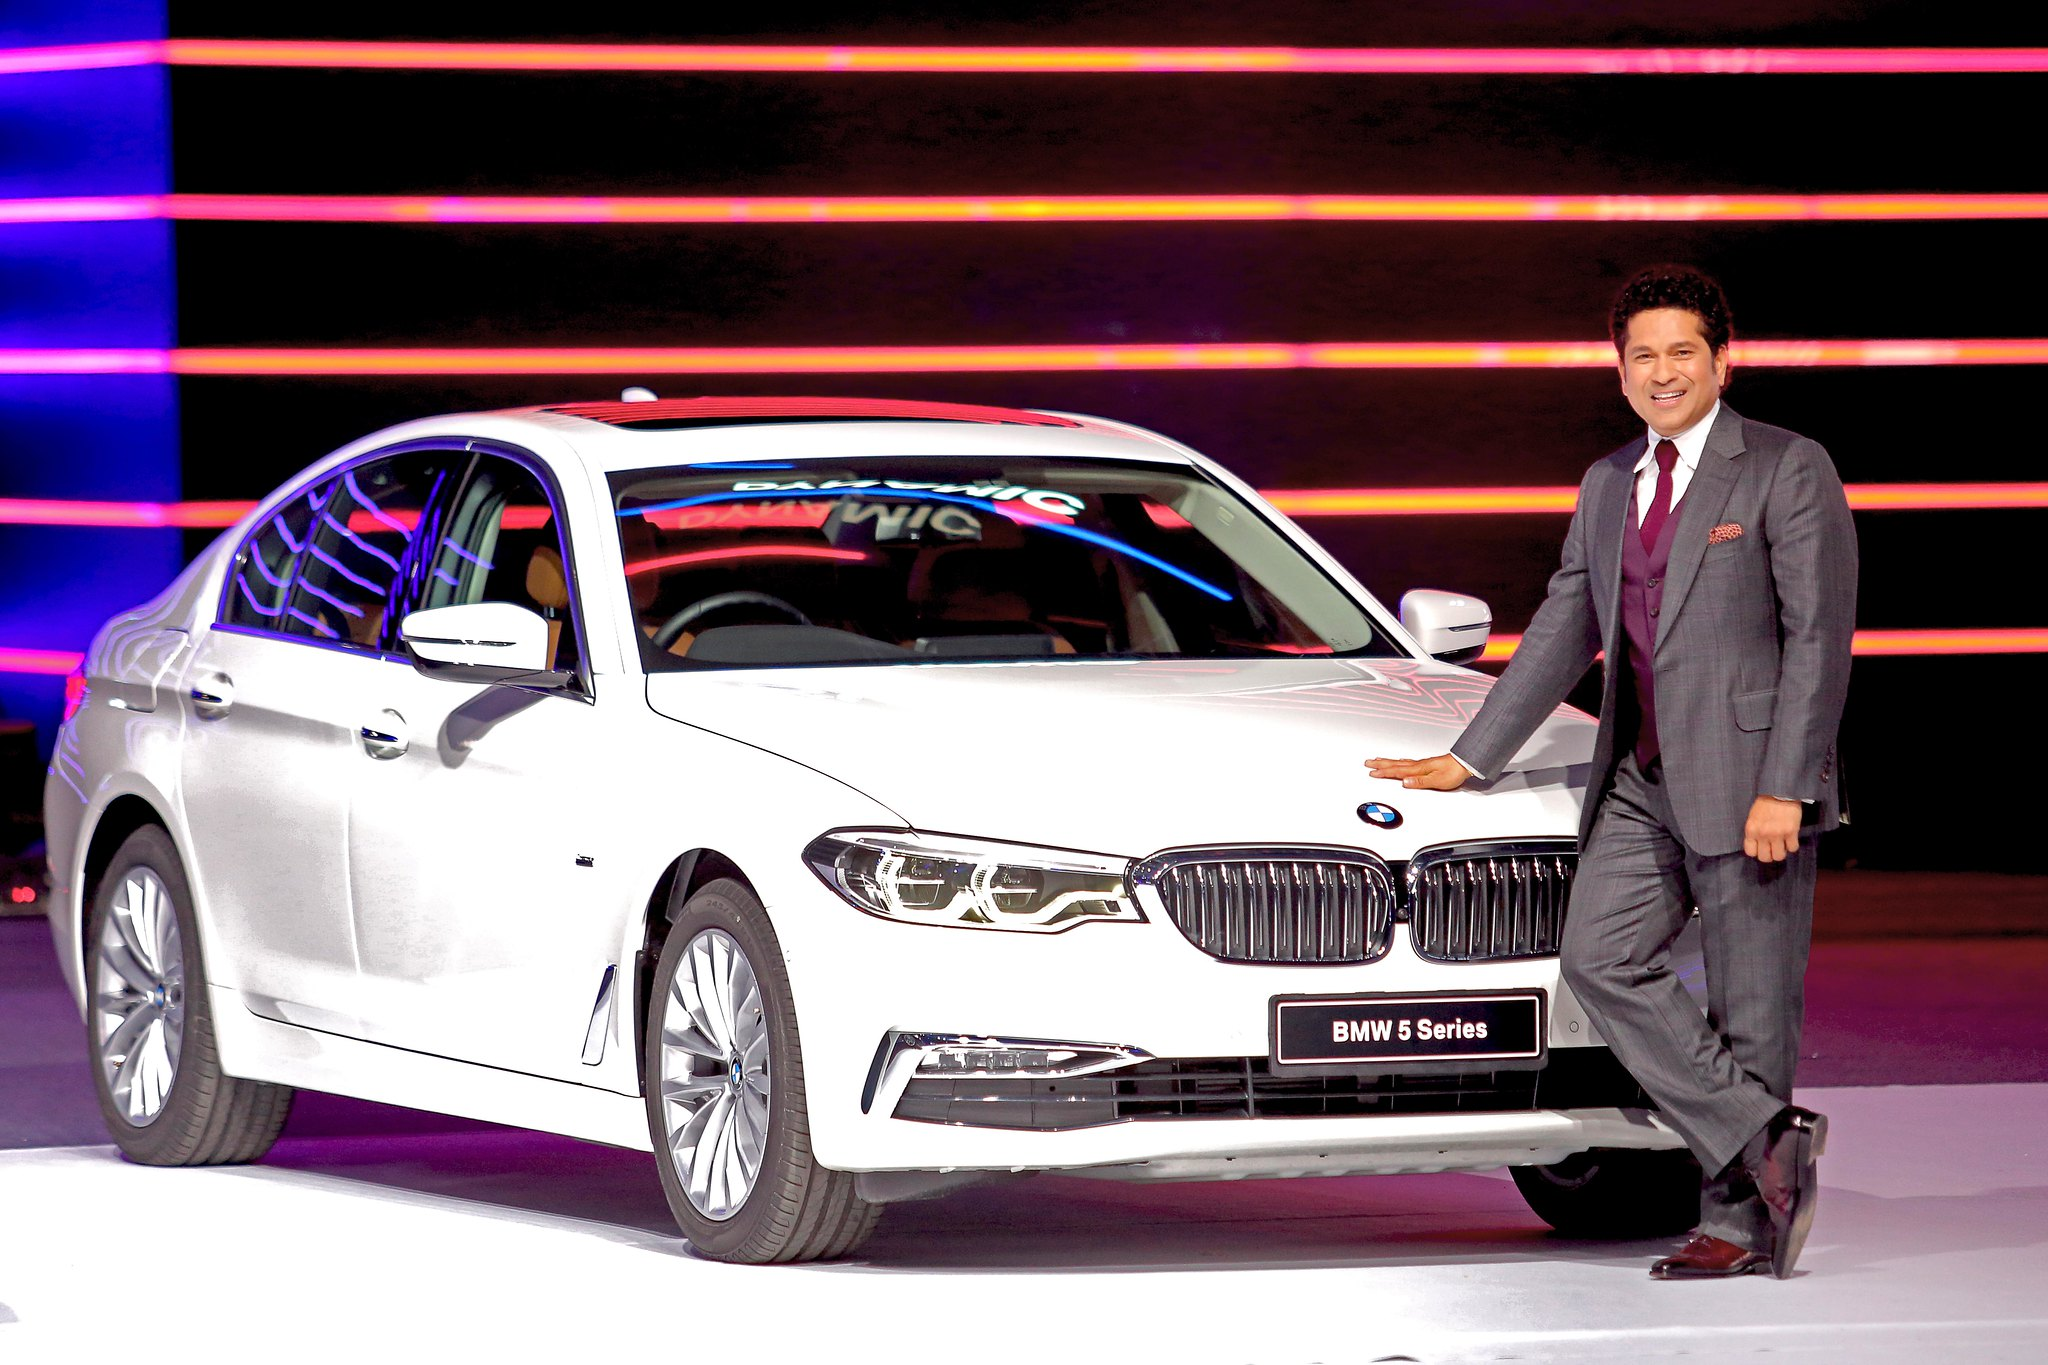 Mr. Sachin Tendulkar with the all-new BMW 5 Series_g